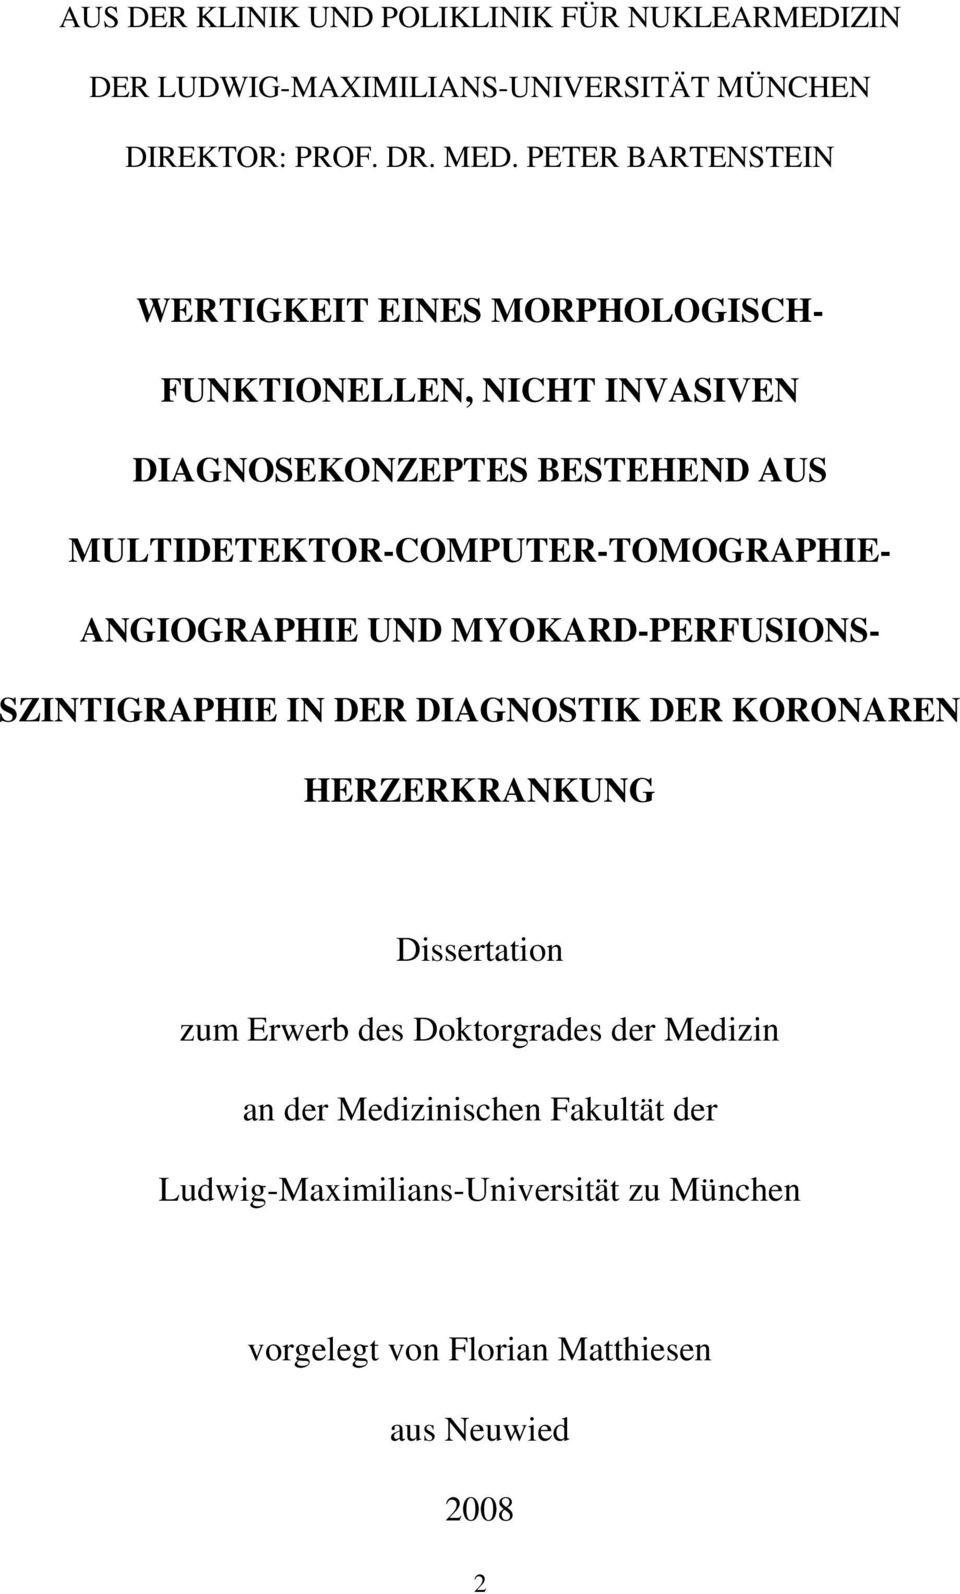 eth dissertation Phd position: detection of anomalous changes and extreme eventes in earth observation data announcement of the open position for a master thesis / bachelor thesis: bayesian tree dani or at eth zürich and dr thomas keller at agroscope 0912 journal of large-scale research facilities – latex template11 dez.